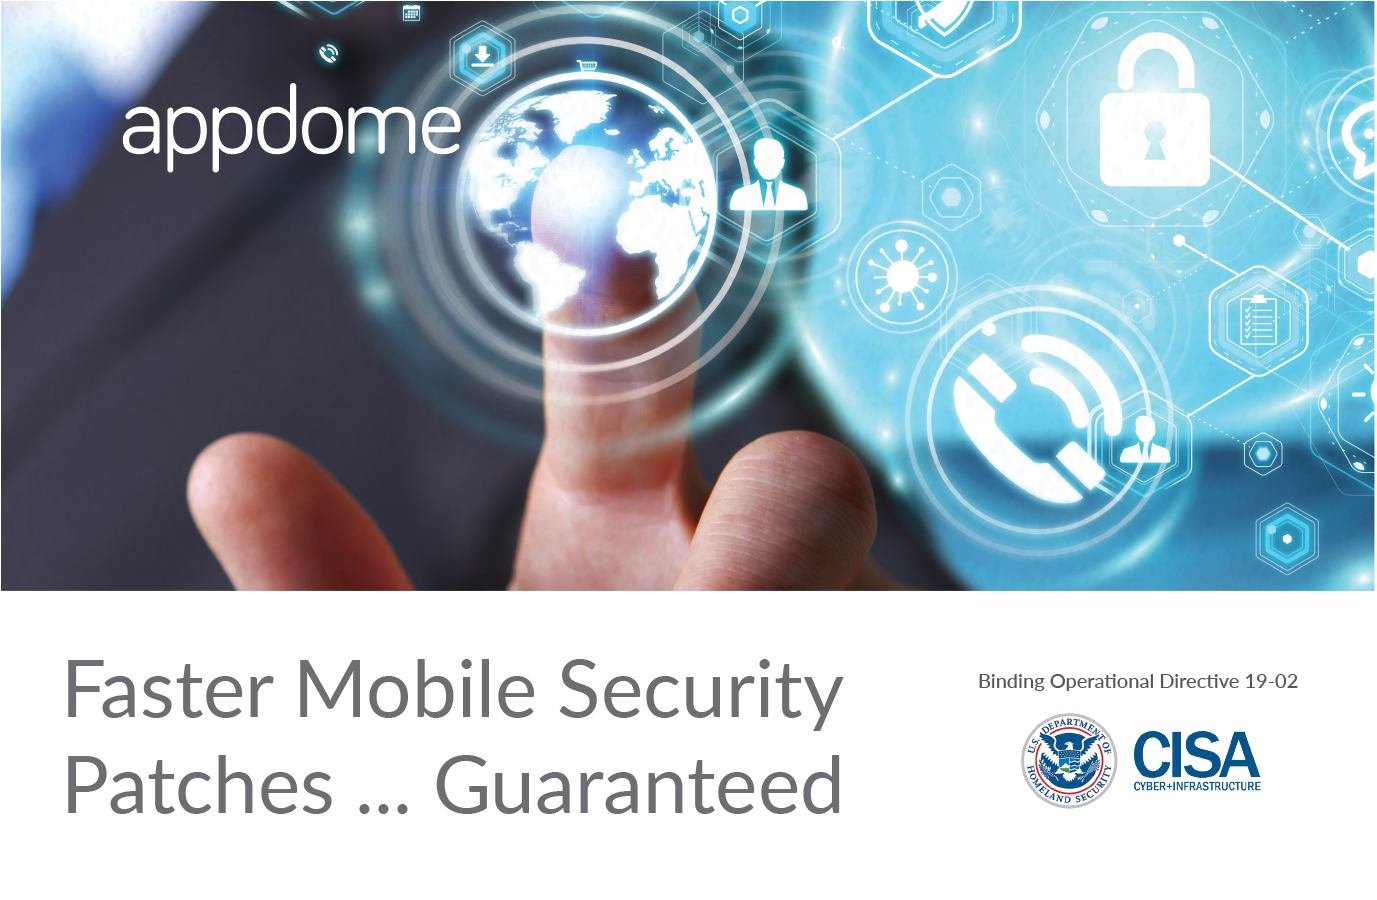 Faster Mobile Security Patches for Binding Operational Directive 19-02